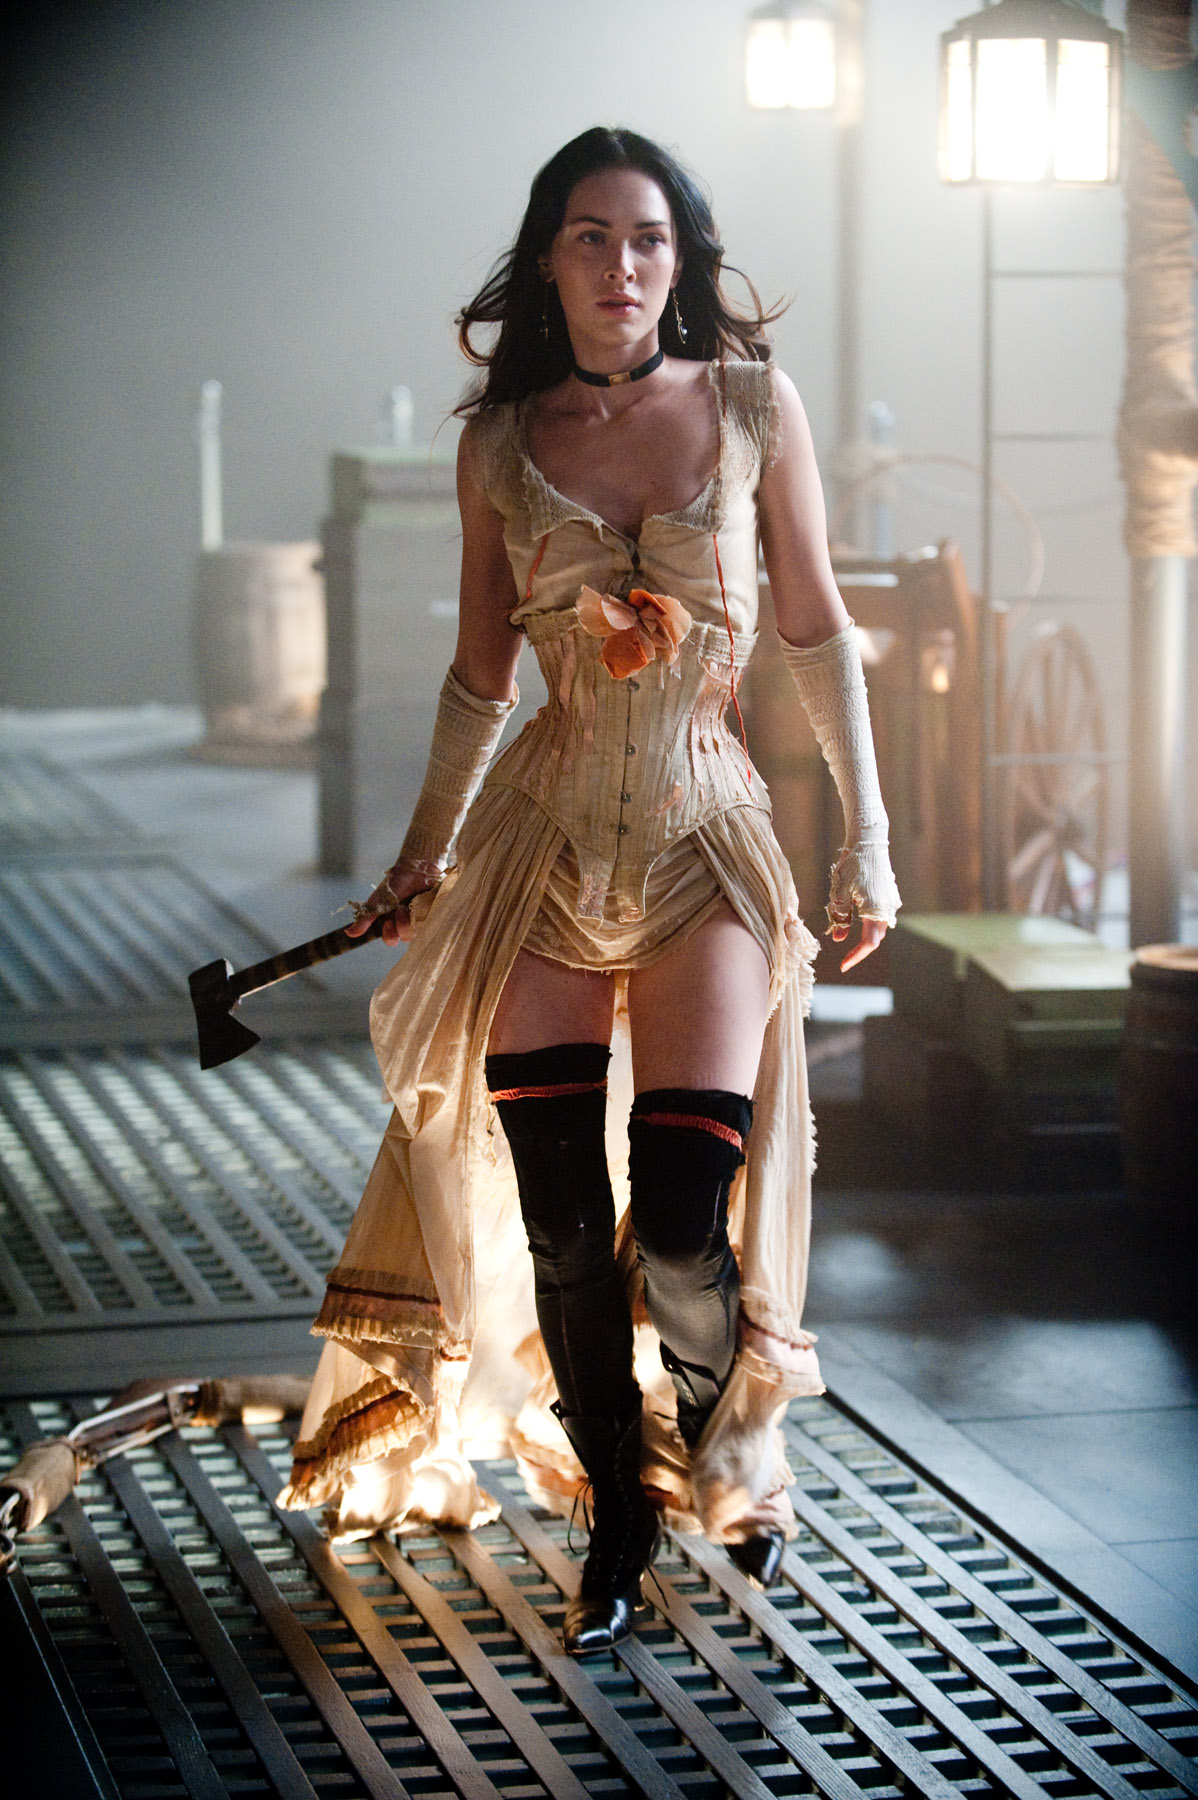 Megan Fox Jonah Hex Movie Image MICHAEL WILKINSON